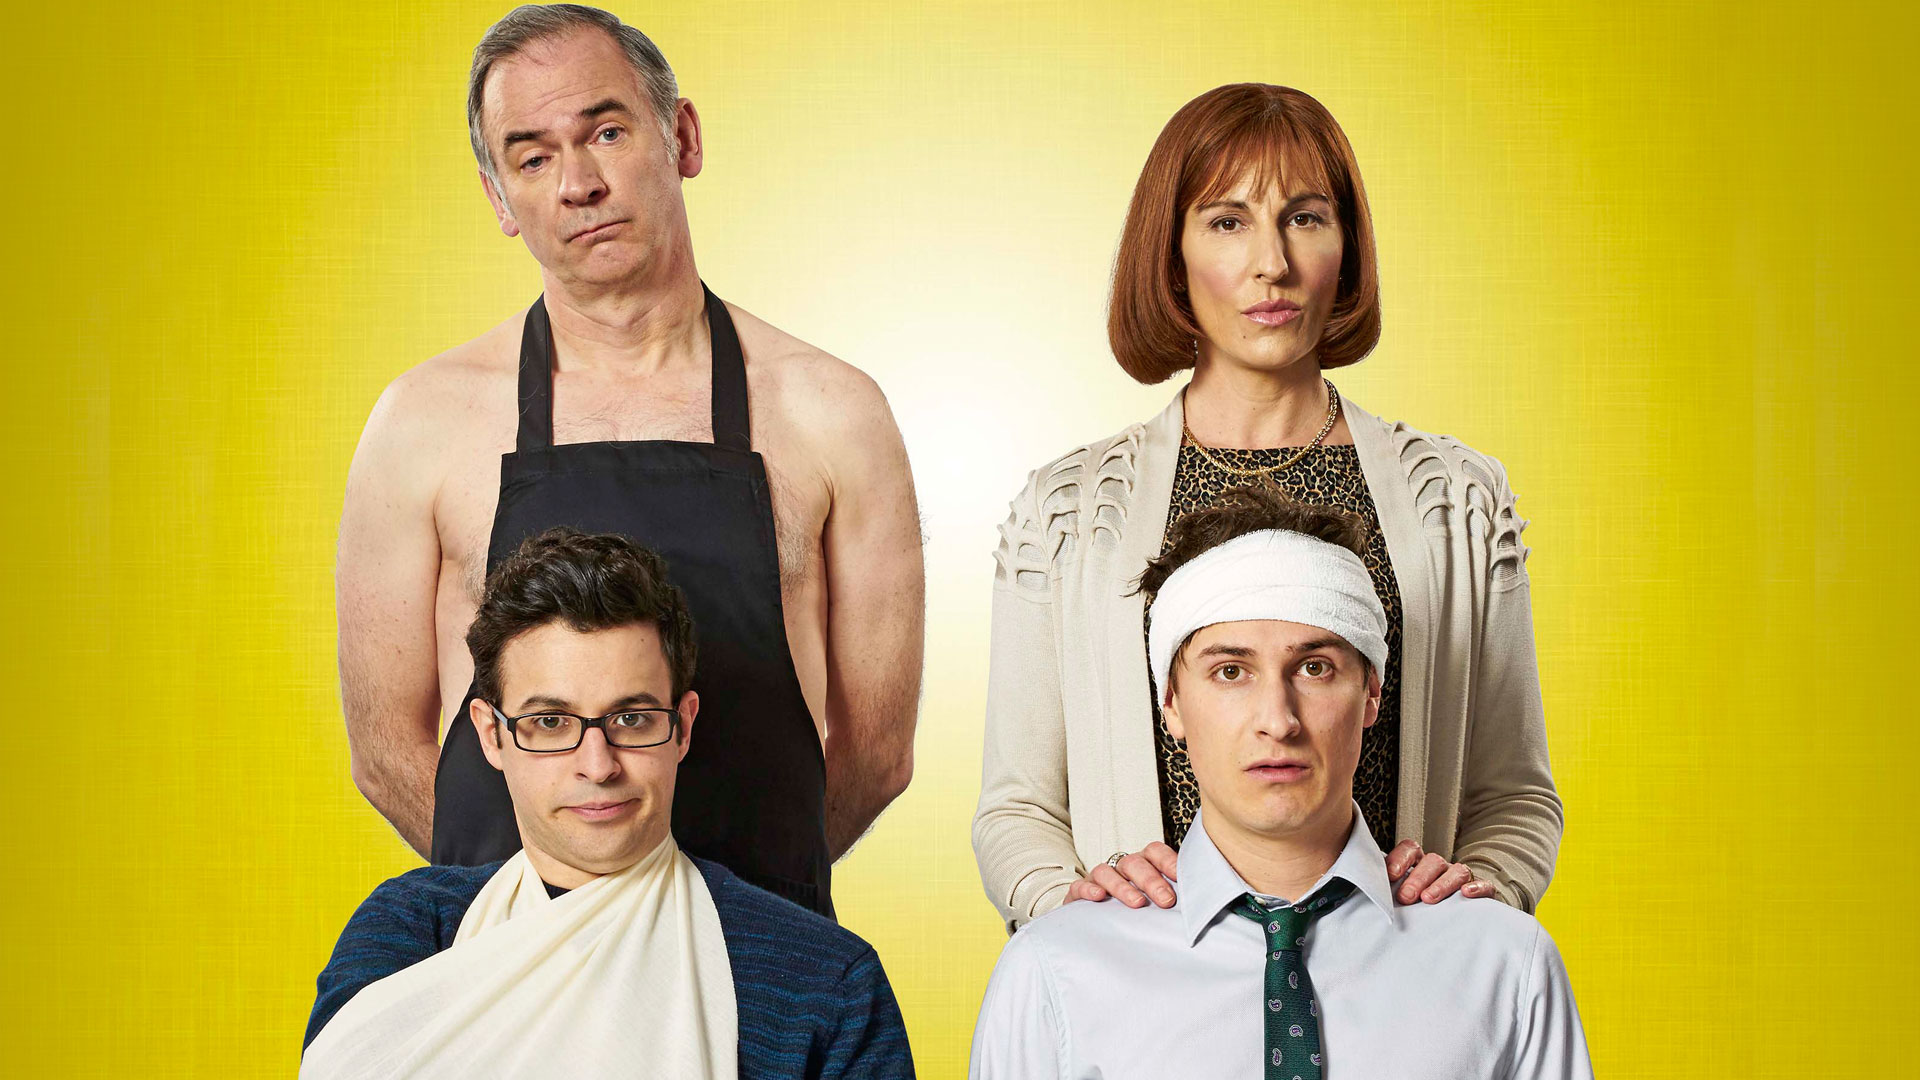 Foursome Assistir pertaining to the inbetweeners - all 4